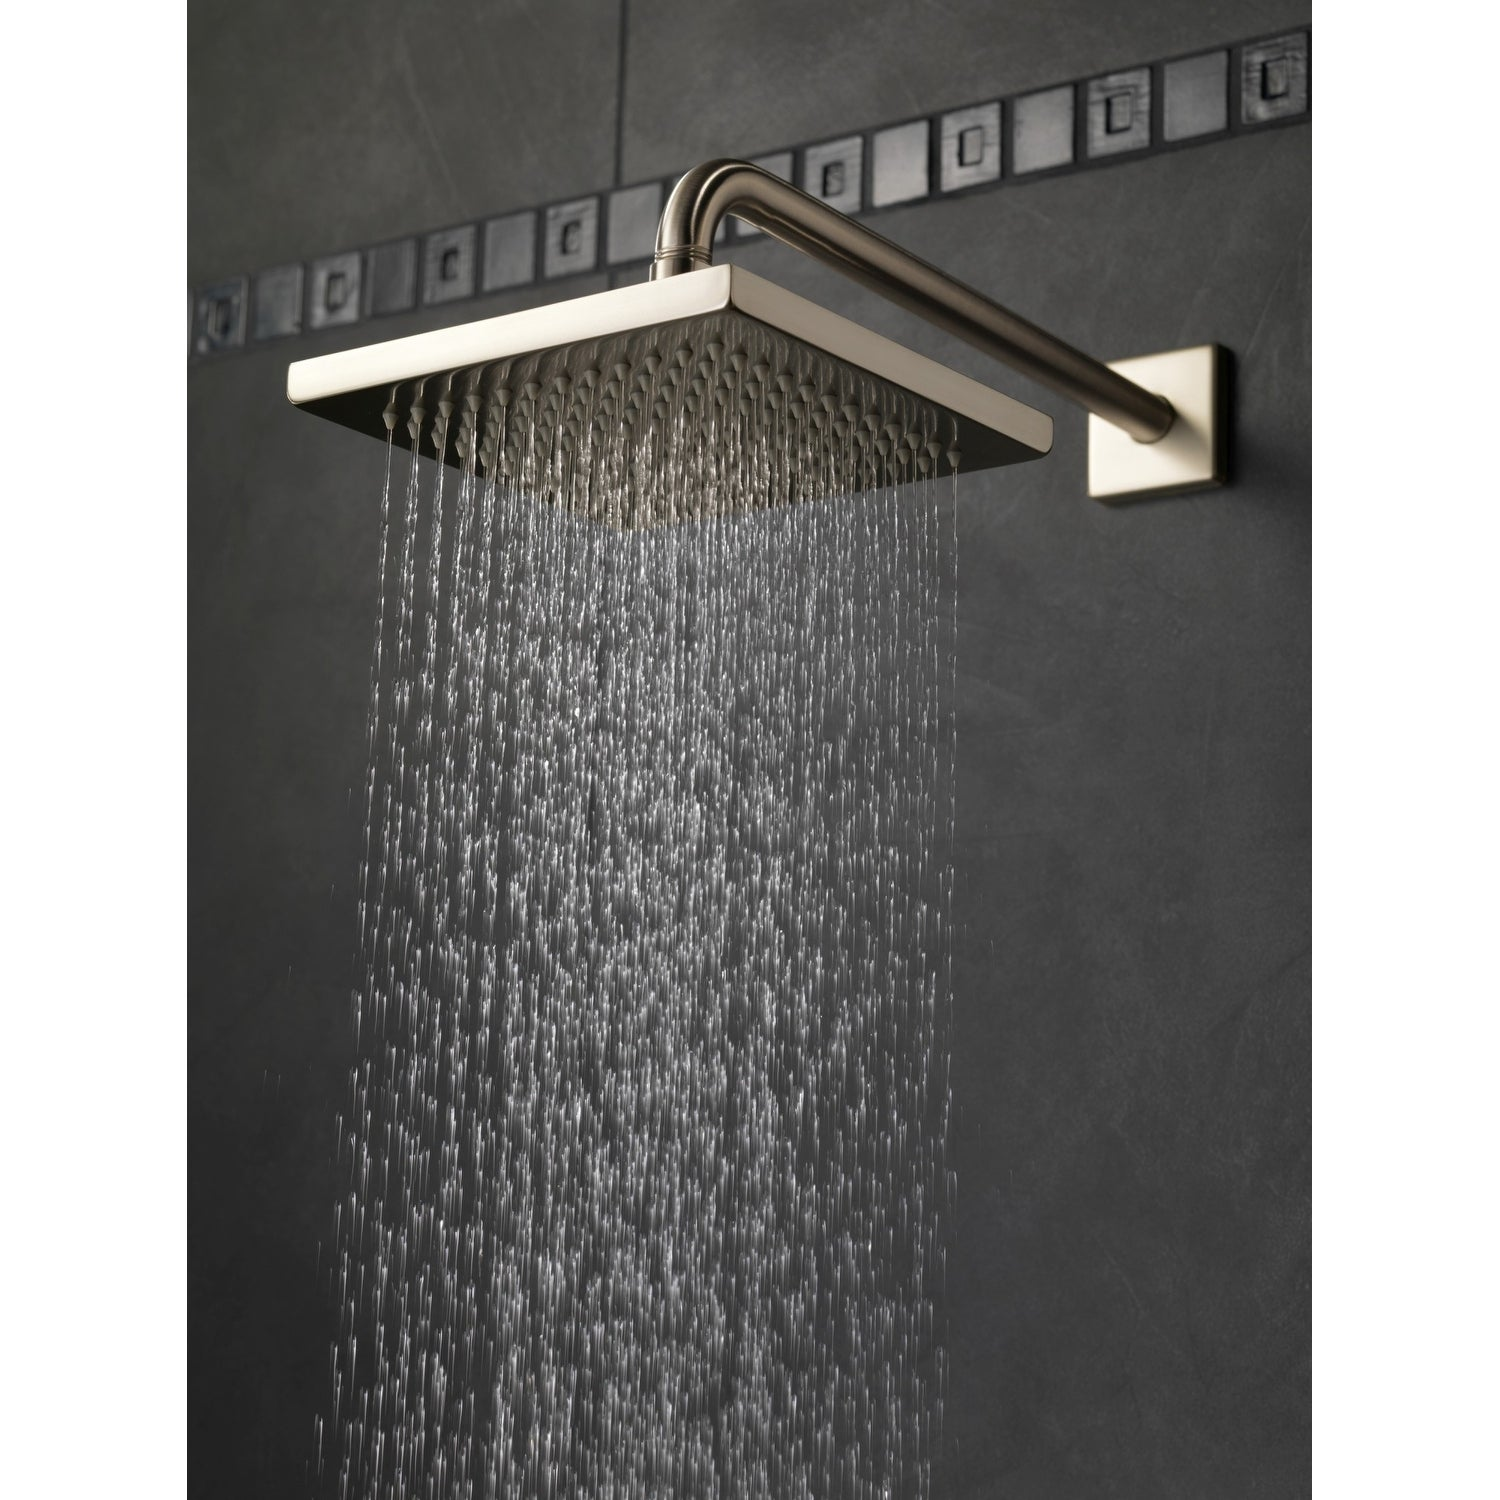 Delta 57740 2 5 Gpm Arzo 8 Wide Rain Shower Head With Shower Arm Flange And Touch Clean Technology